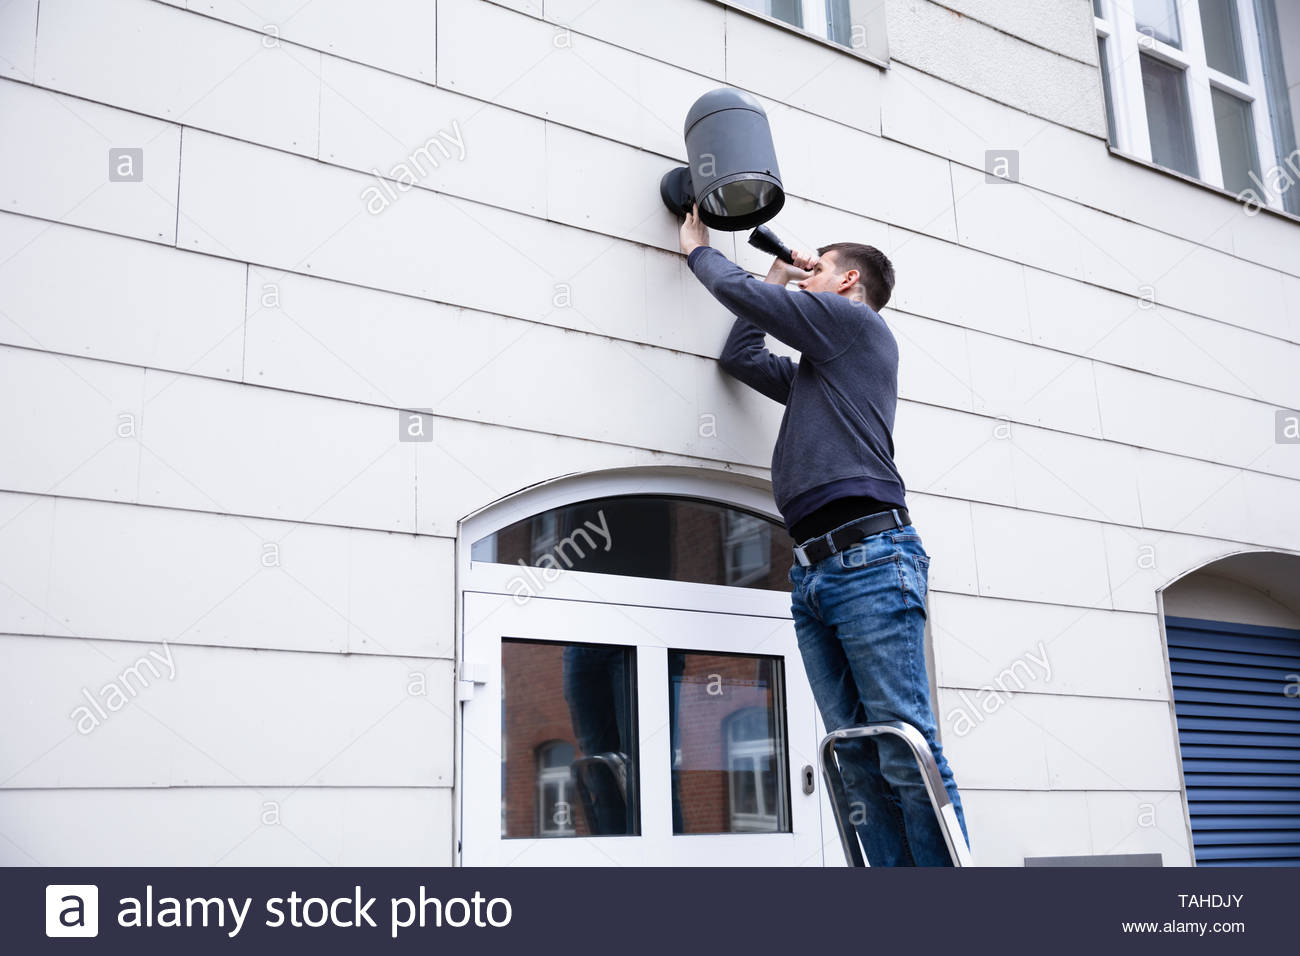 Young Serviceman Standing On Ladder Checking Outdoor Electric Lamp On Wall With Torch Light - Stock Image